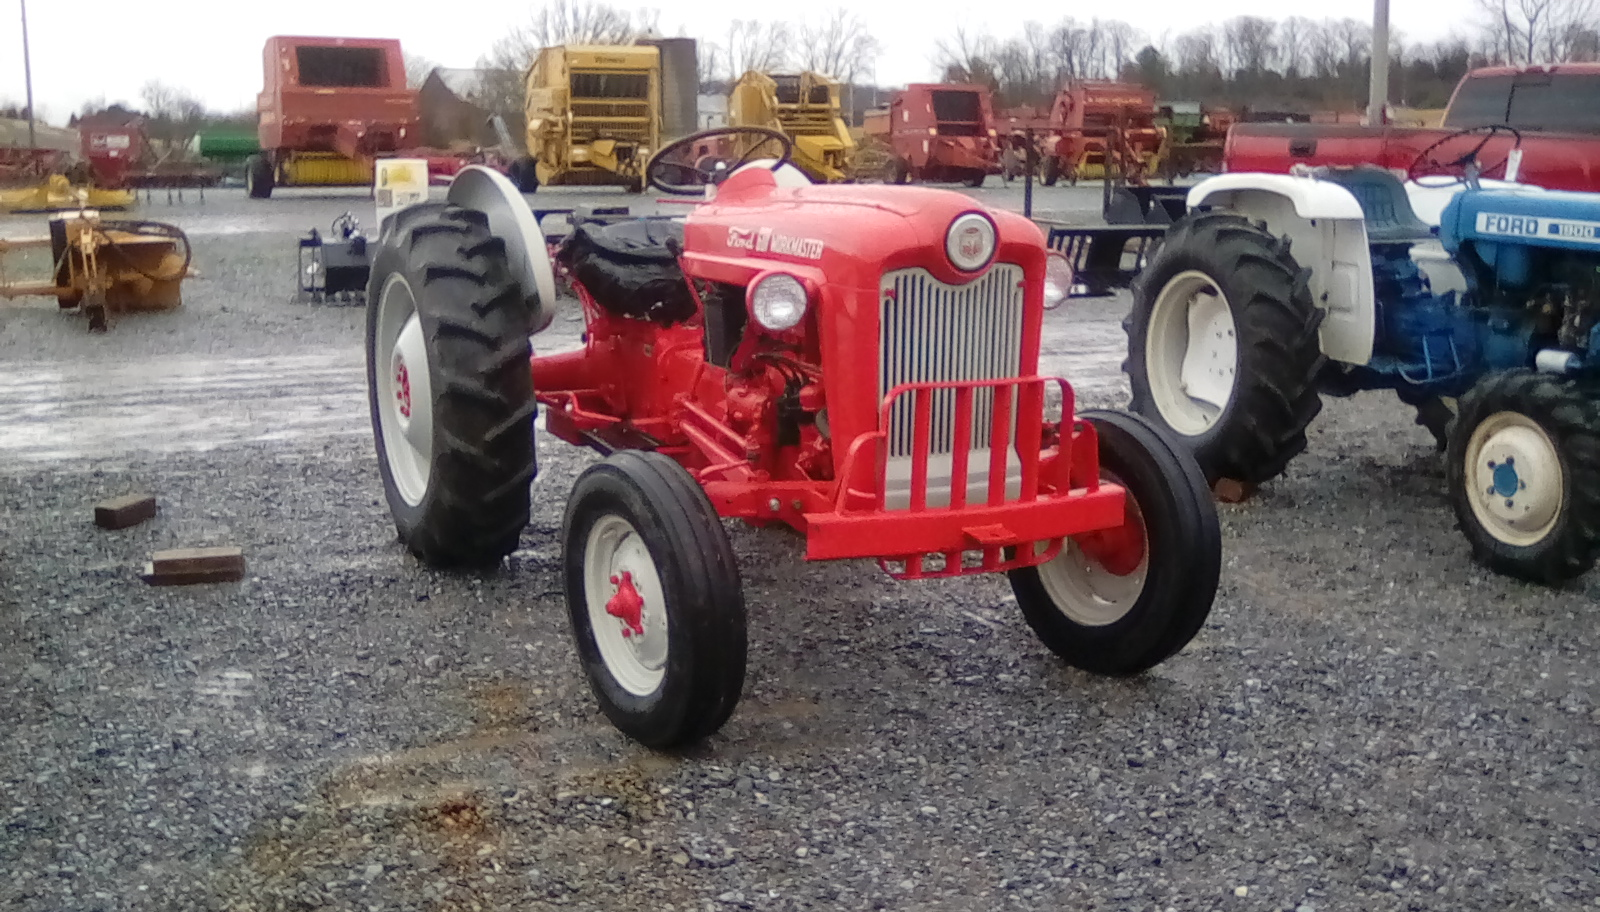 FORD WORKMASTER 601 (641) Image